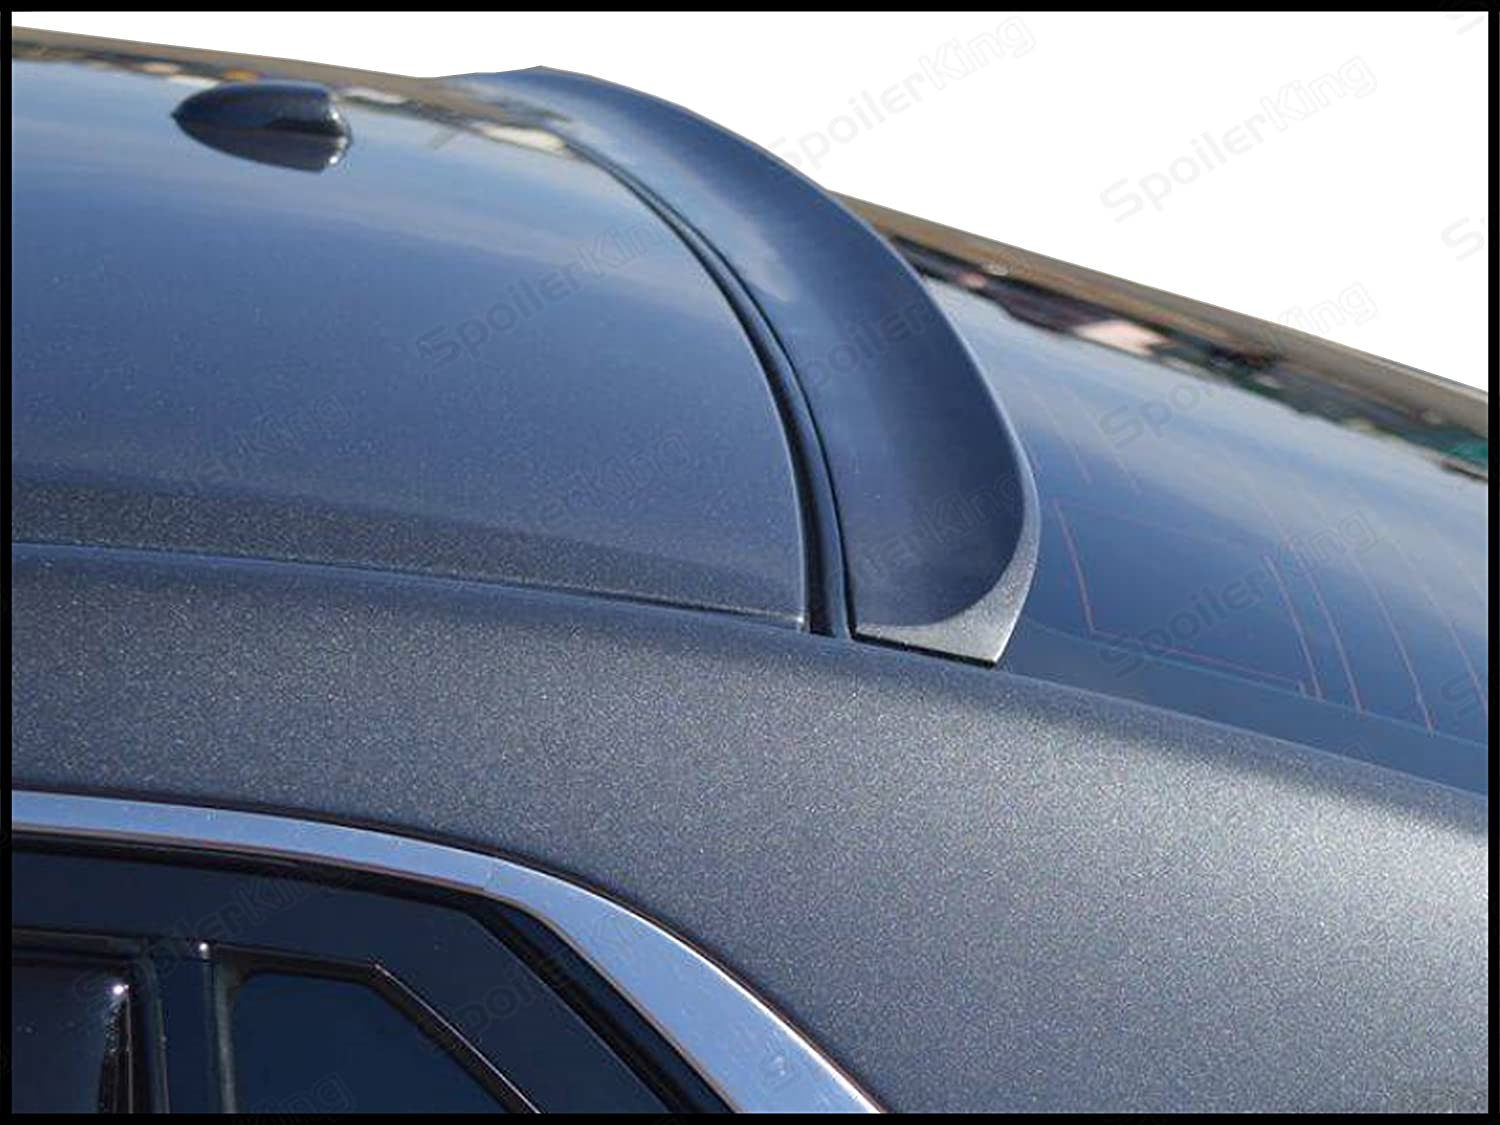 284R Rear Roof Spoiler Window Wing Visor Fits: Cadillac XTS 2013-on